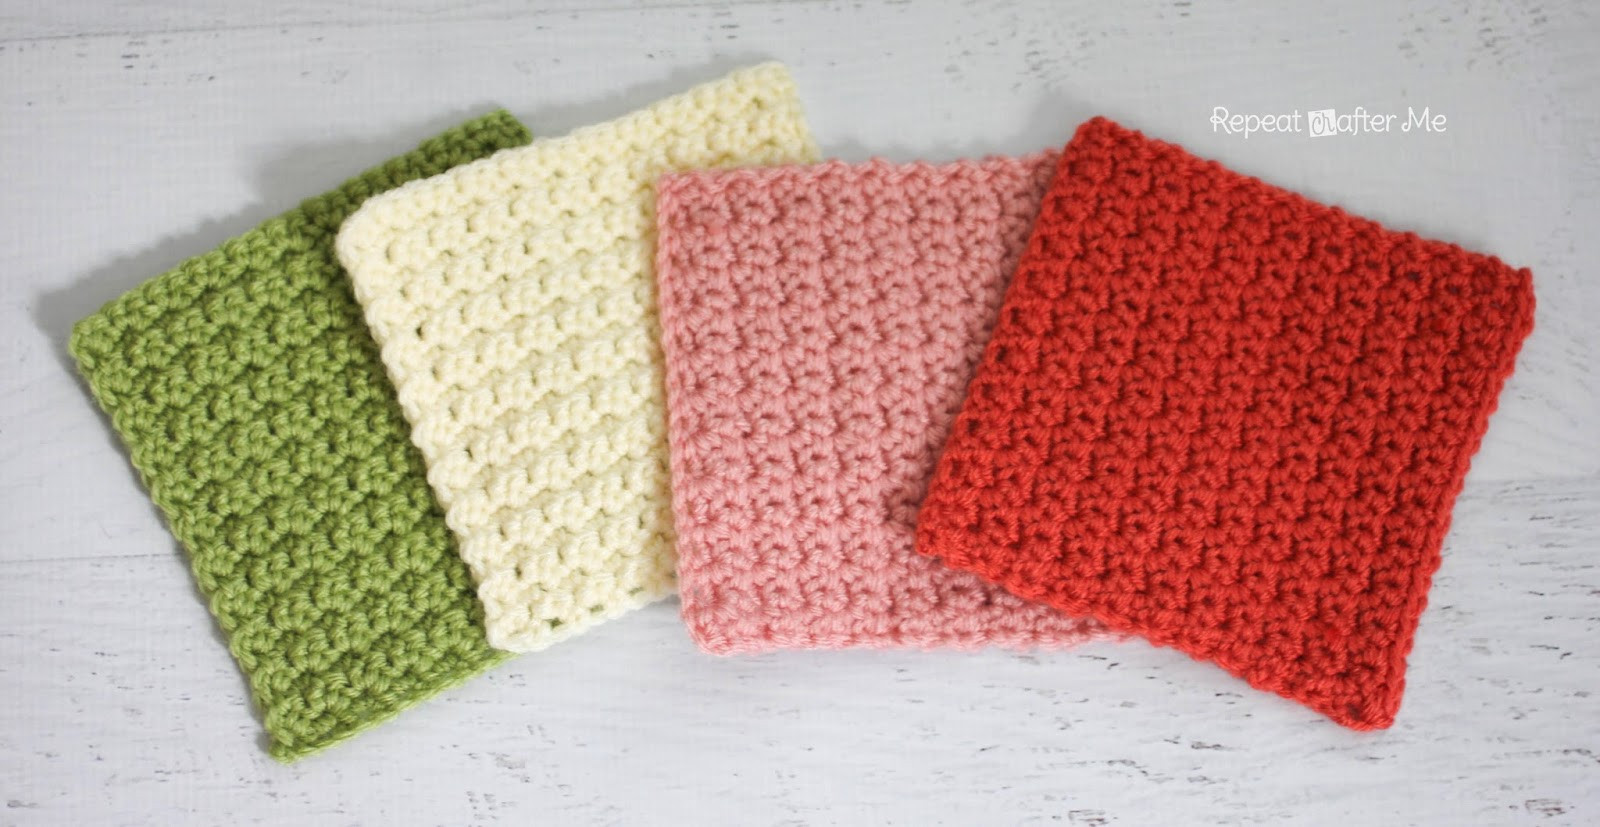 New Repeat Crafter Me solid Granny Square Crochet Pattern Crochet Square Blanket Patterns Of Lovely 43 Pictures Crochet Square Blanket Patterns